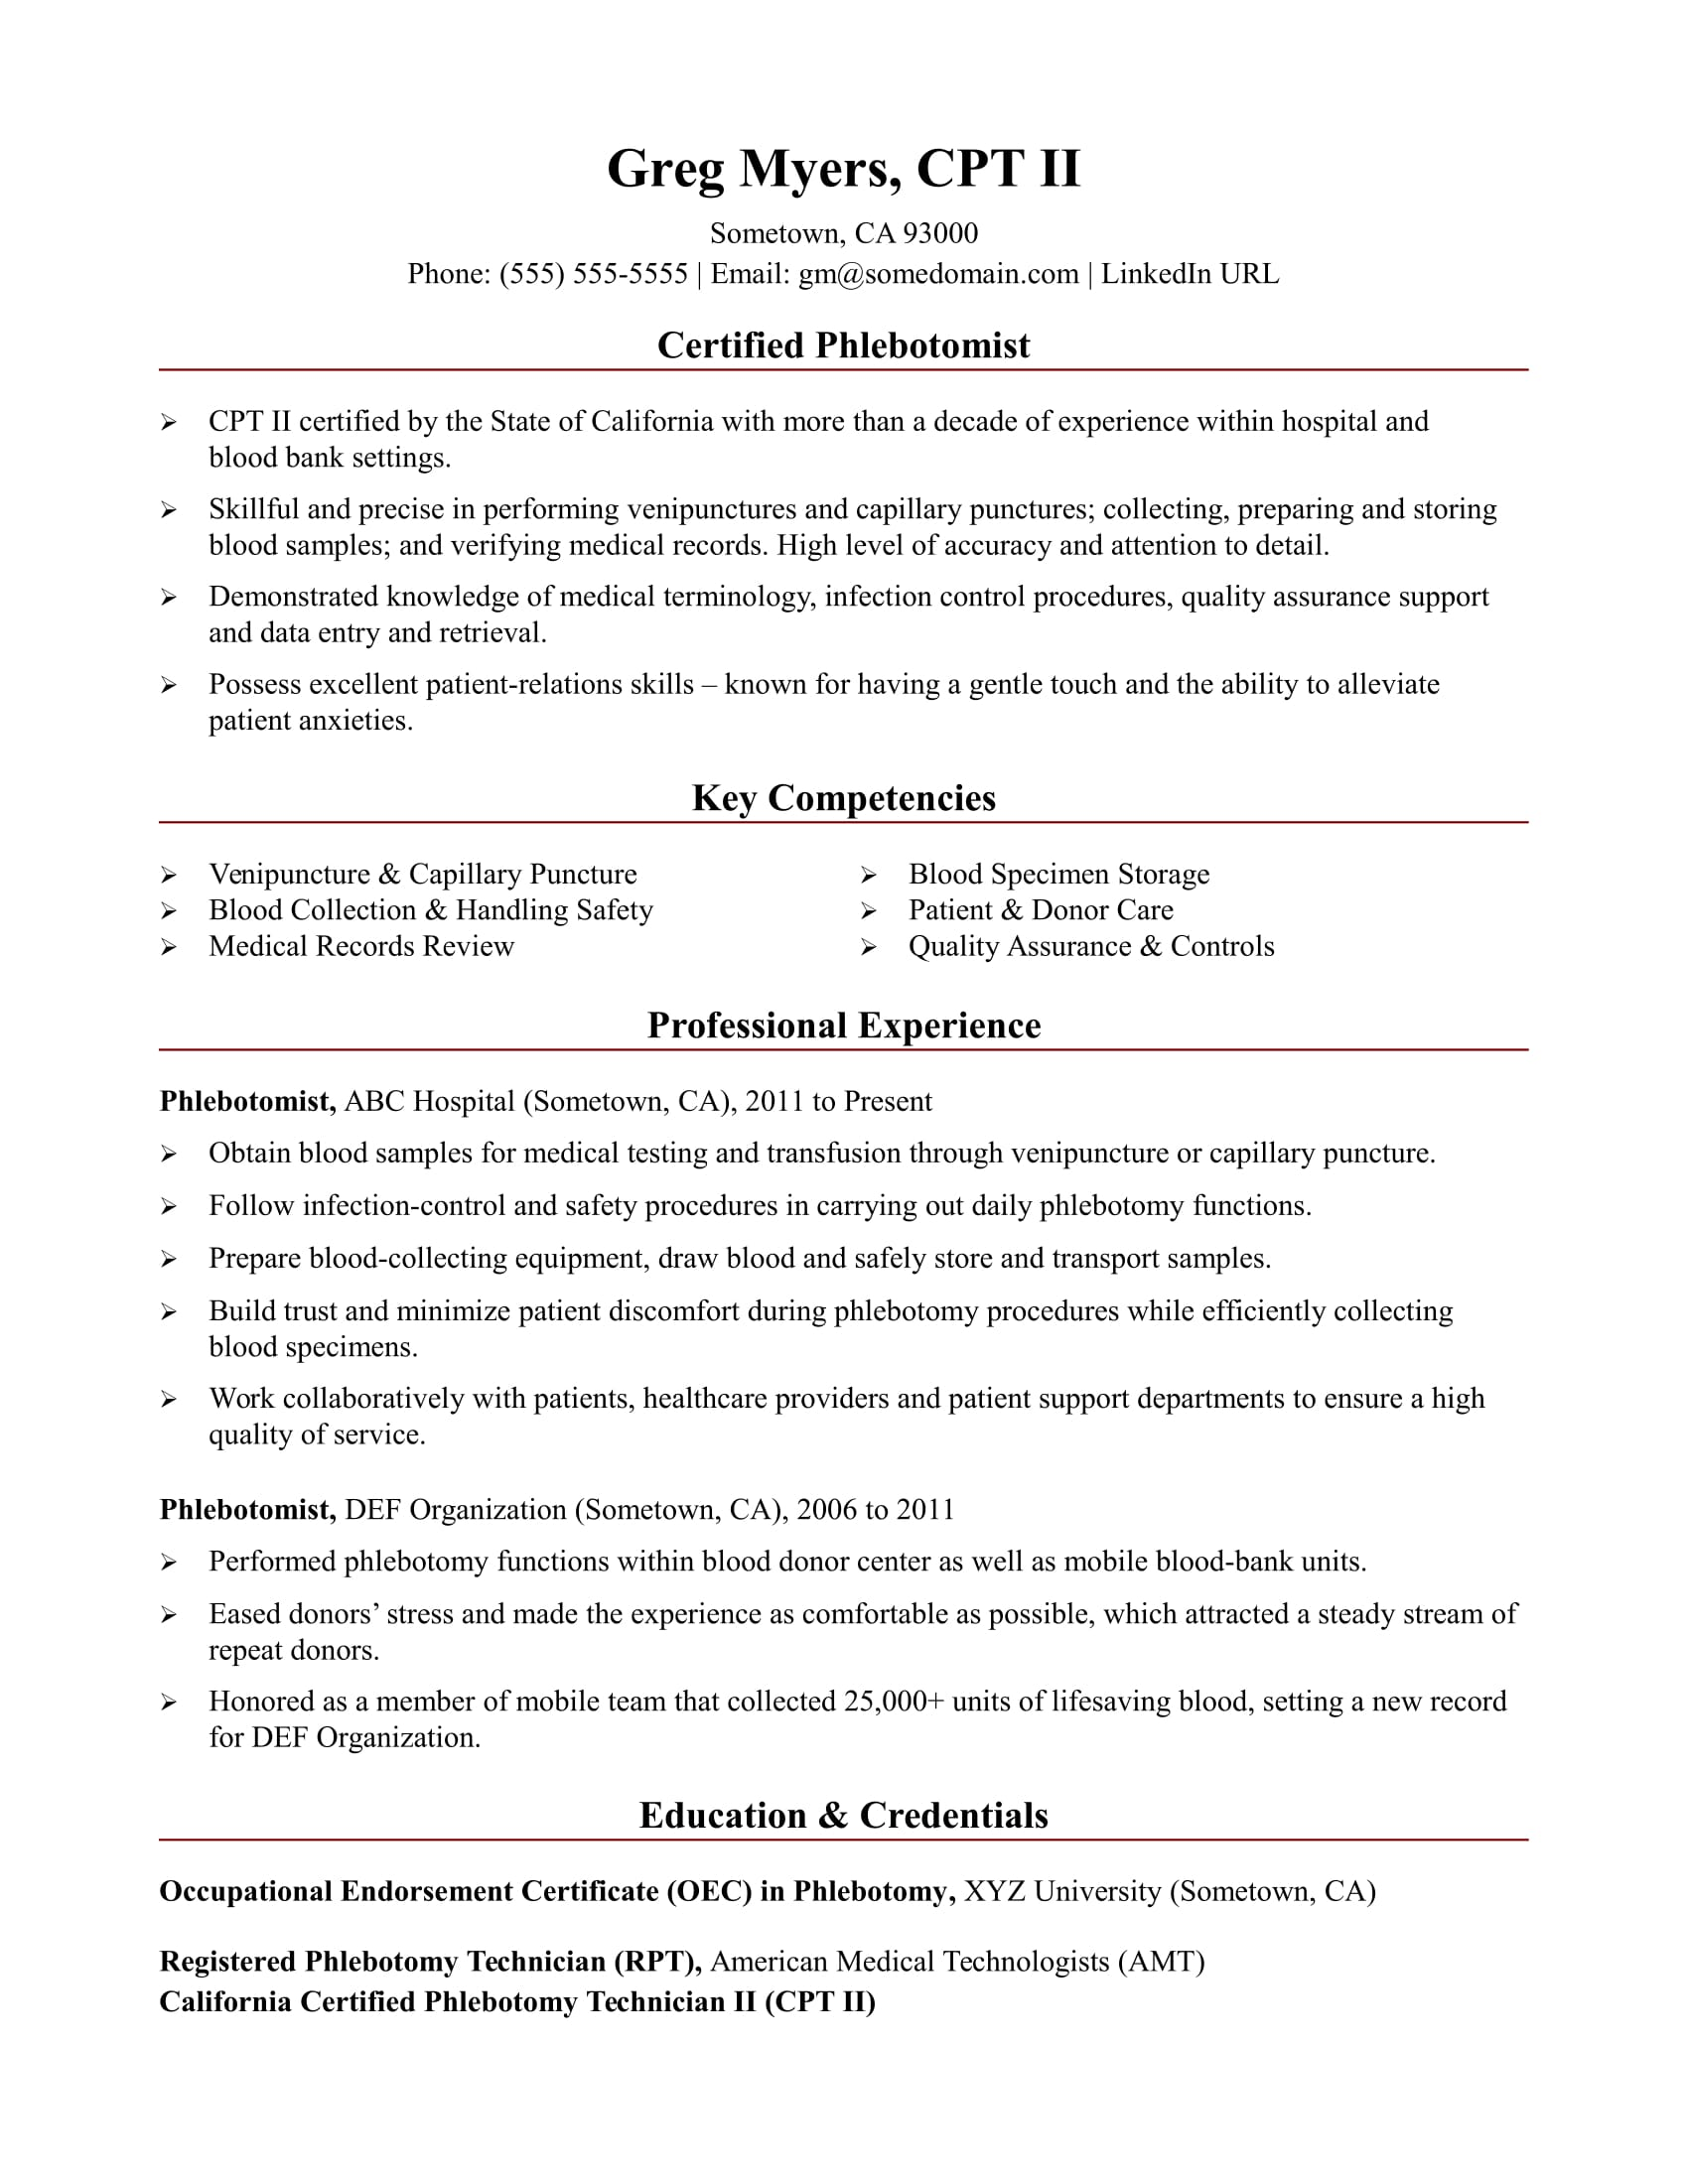 Sample Resume for a Phlebotomist